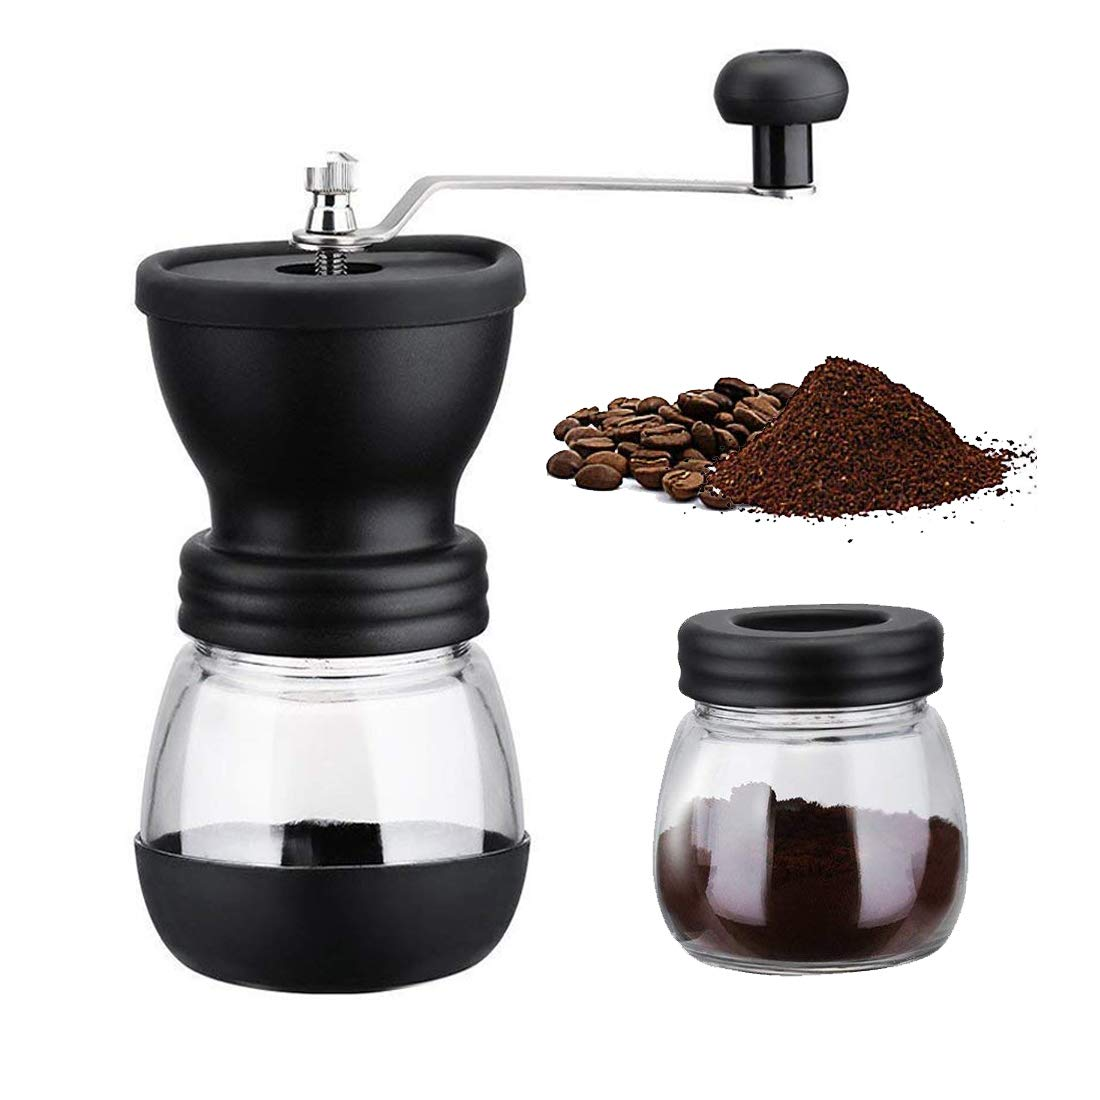 Angker Manual Coffee Grinder, Adjustable Ceramic Burr Manual Coffee Grinder with Glass Storage Tank for Espresso/Pour Over/French Press/Turkish Coffee Brewing